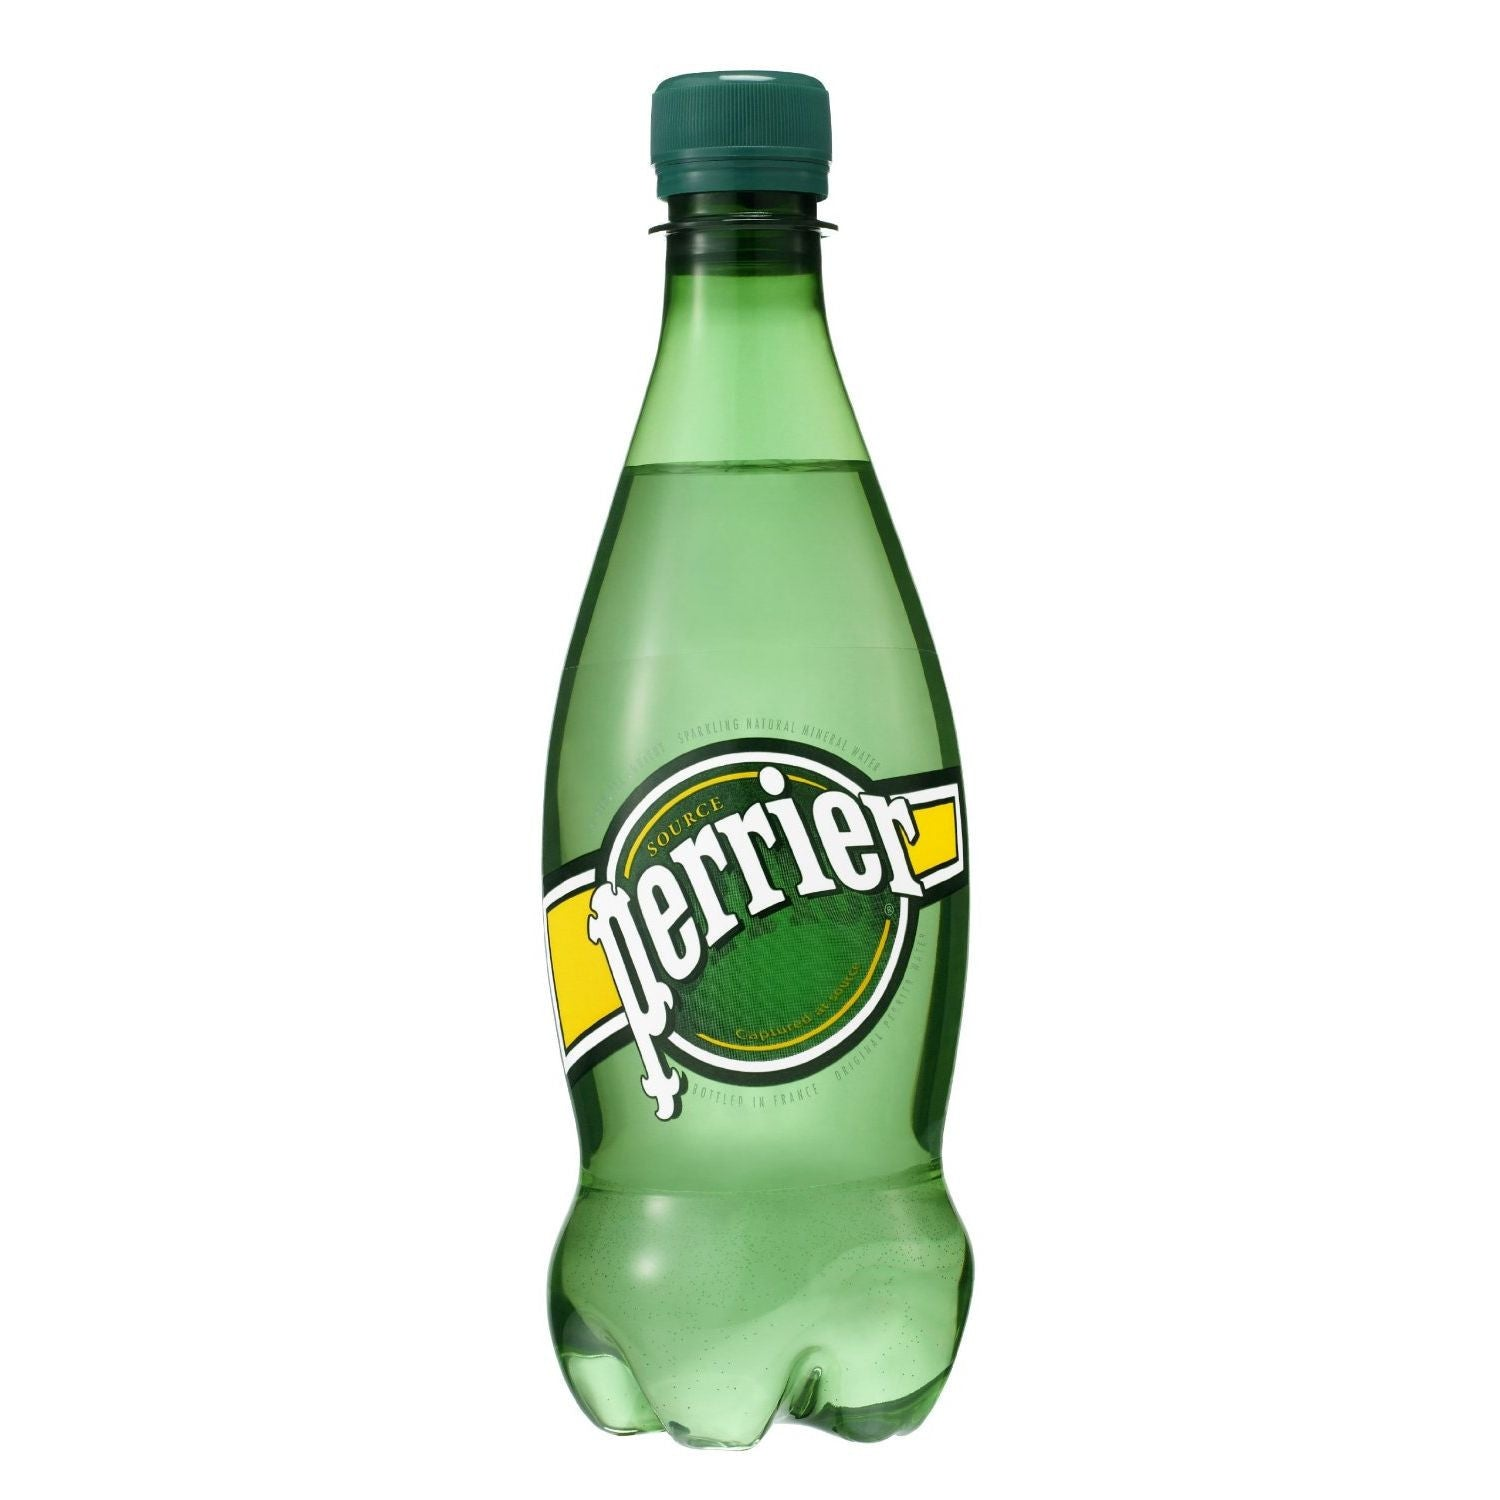 Perrier Sparkling Natural Mineral Water, 16.9 Oz (Pack of 4)